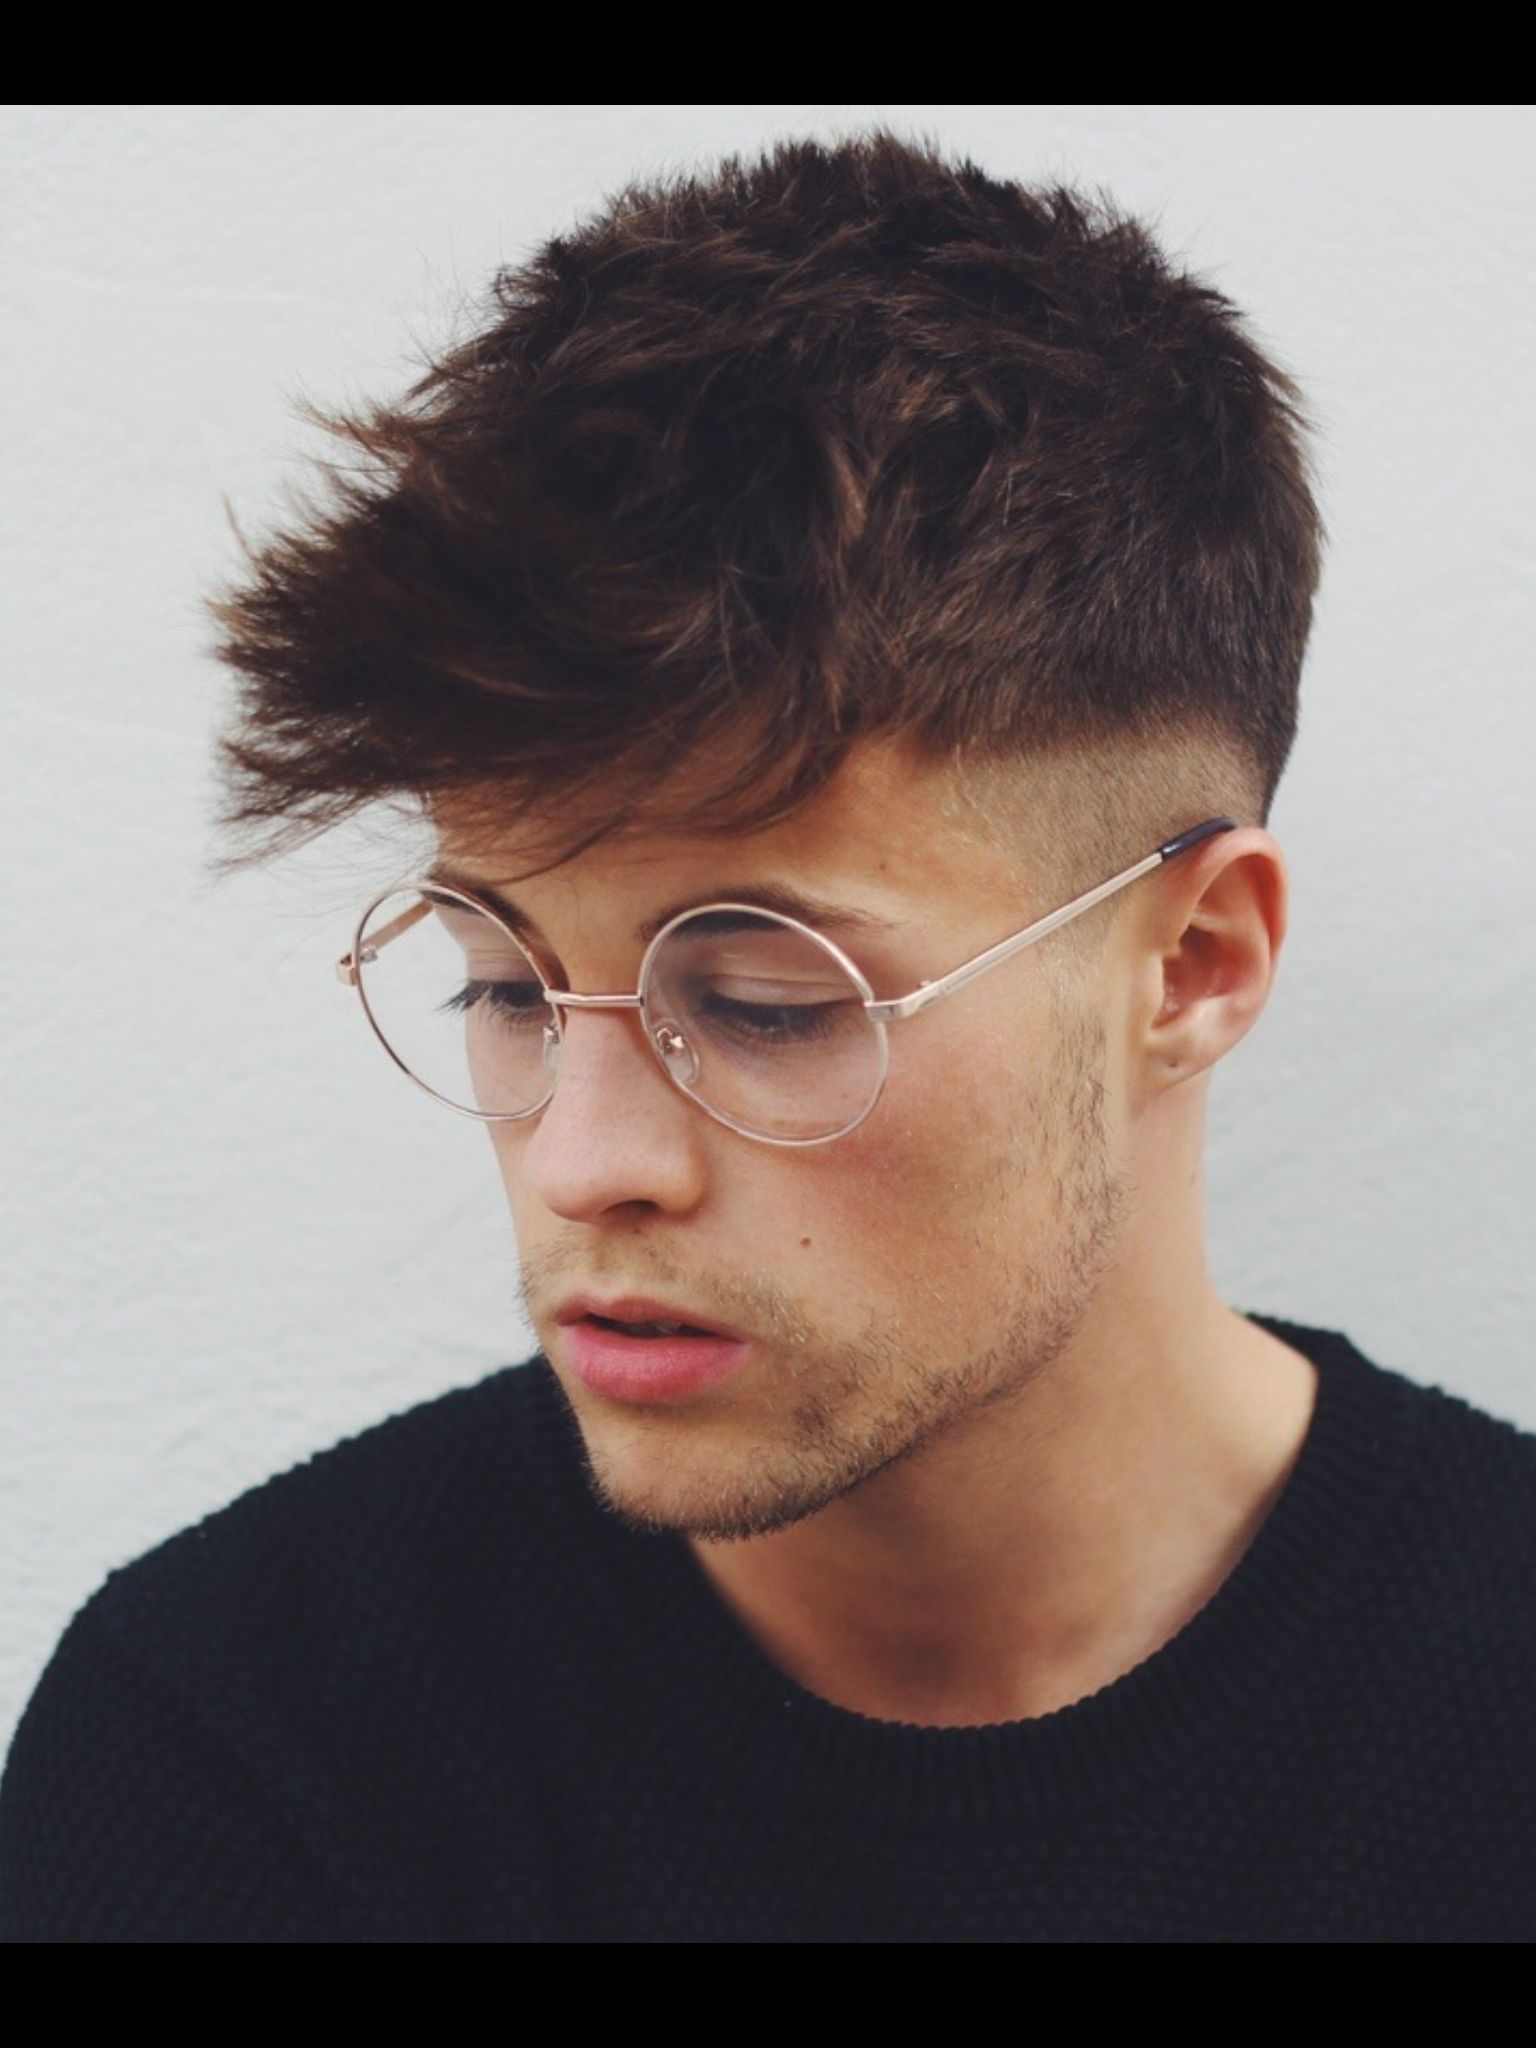 40 Hairstyles For Thick Hair Men's